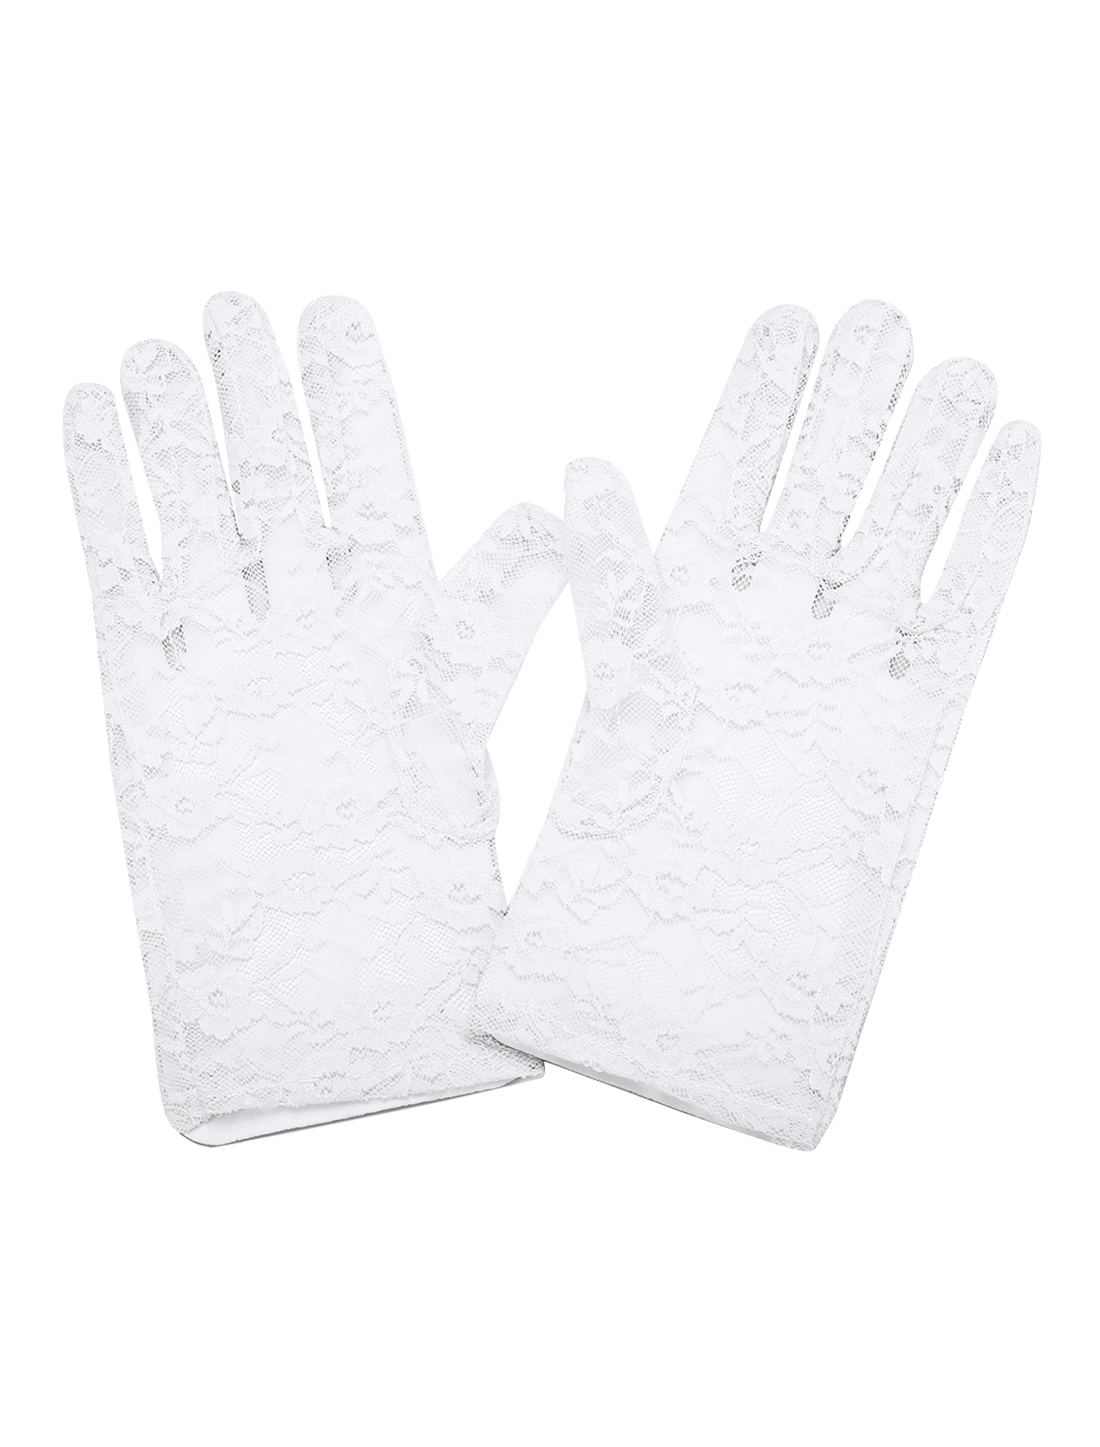 Lady Floral Lace Wrist Length Full Finger Gloves Pair White